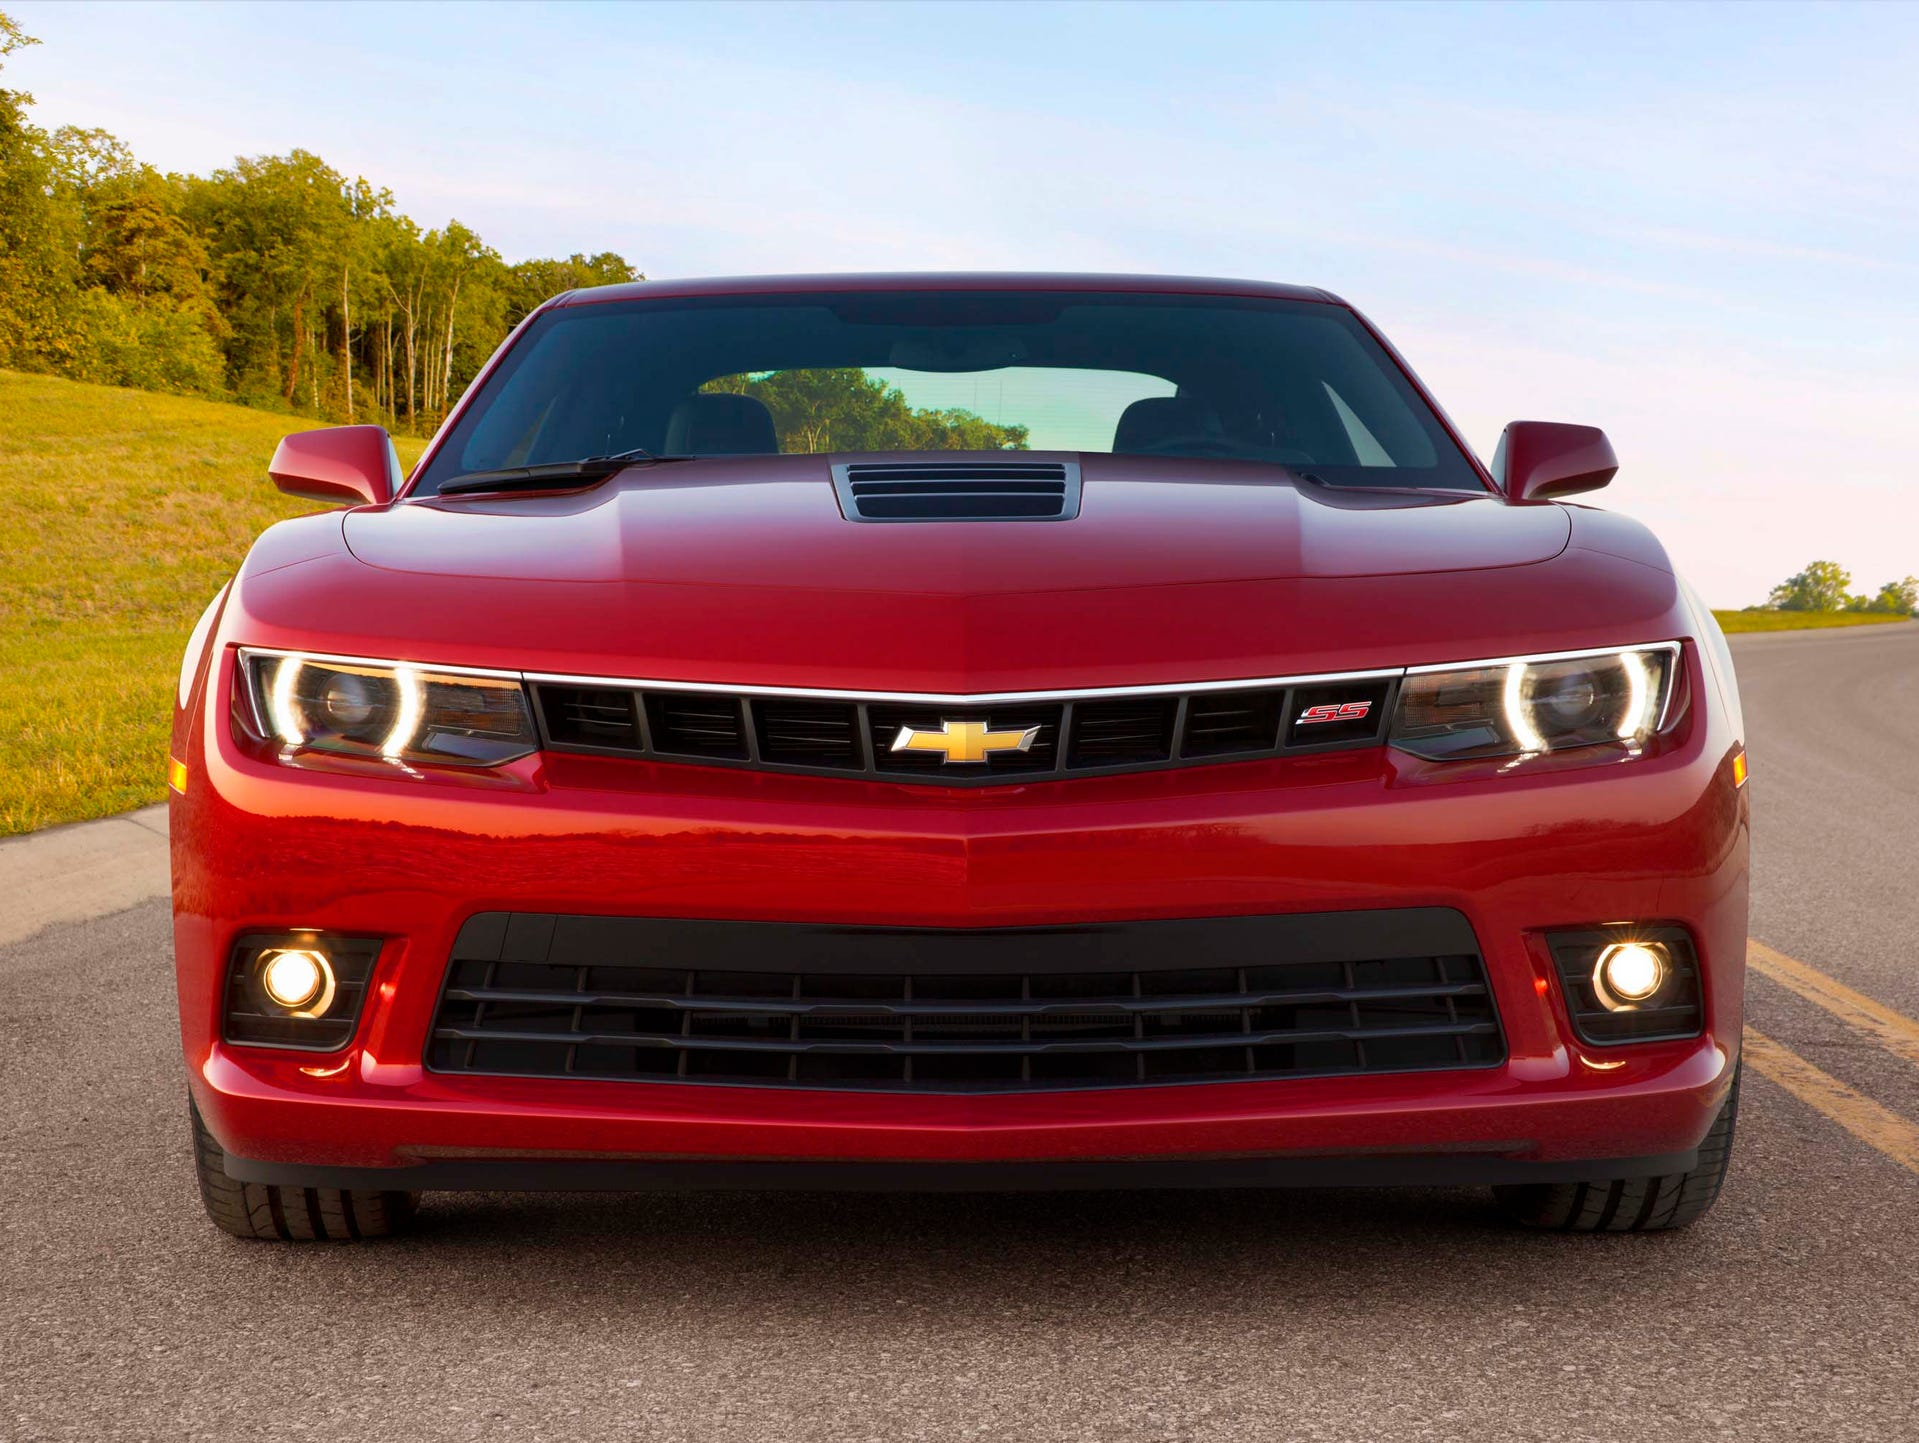 2015: With the much-anticipated, sixth-generation Camaro